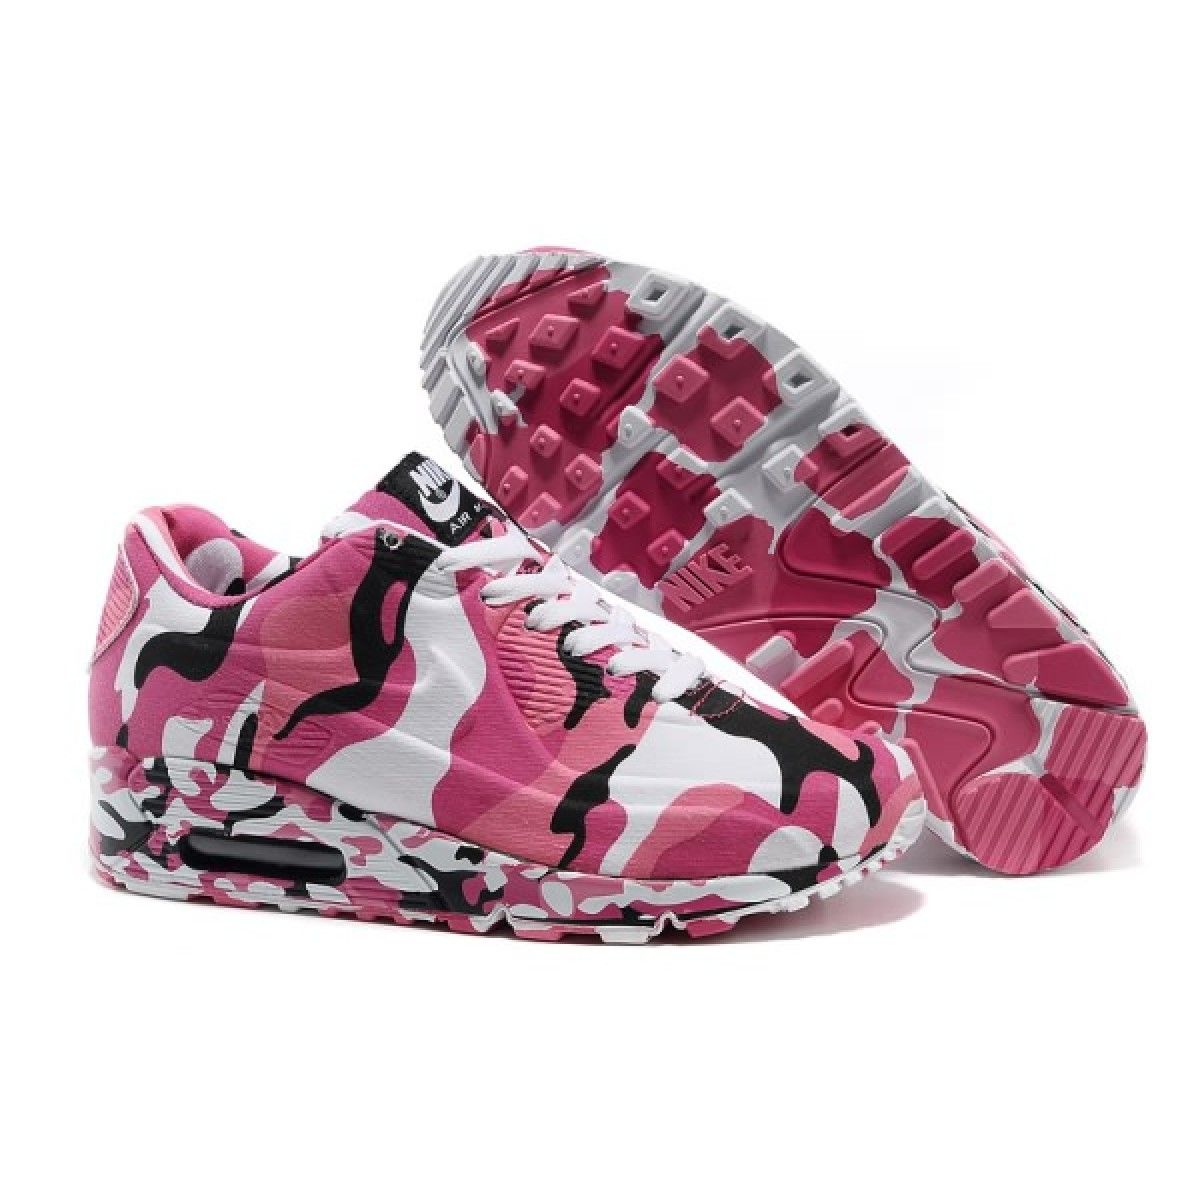 official photos c1fe8 4bf74 pink camo shoes  Womens Nike Air Max 90 VT Camouflage Shoes PinkWhite on  sale for USA .